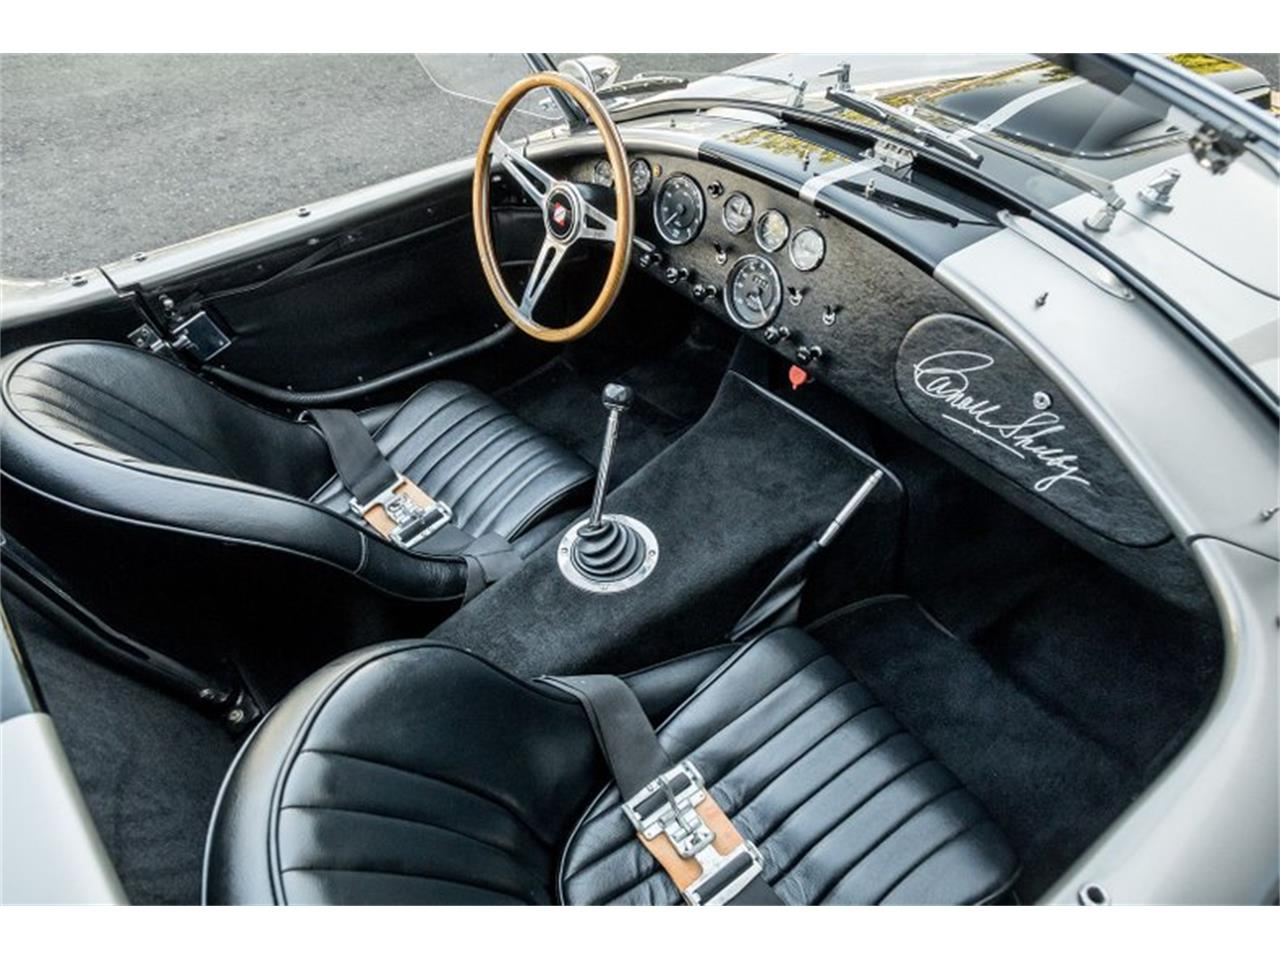 1965 Superformance MKIII (CC-1258802) for sale in Irvine, California